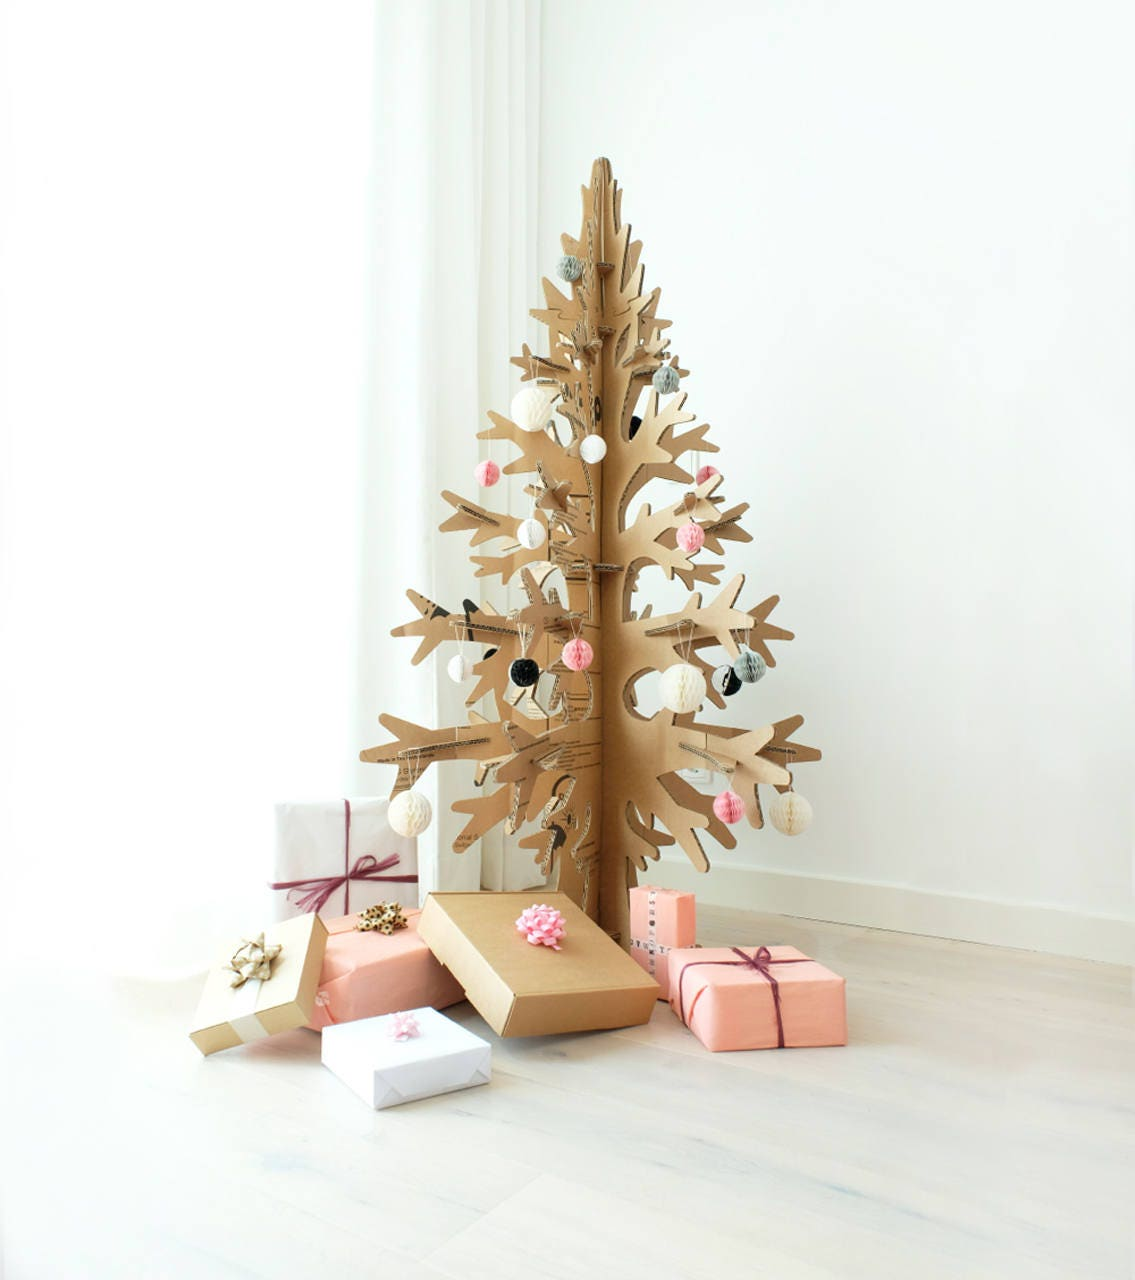 Commercial Christmas Trees From 12 To 100 In Height: 132cm / 4'33'' Brown Cardboard Laser-cut Modern Cut-out